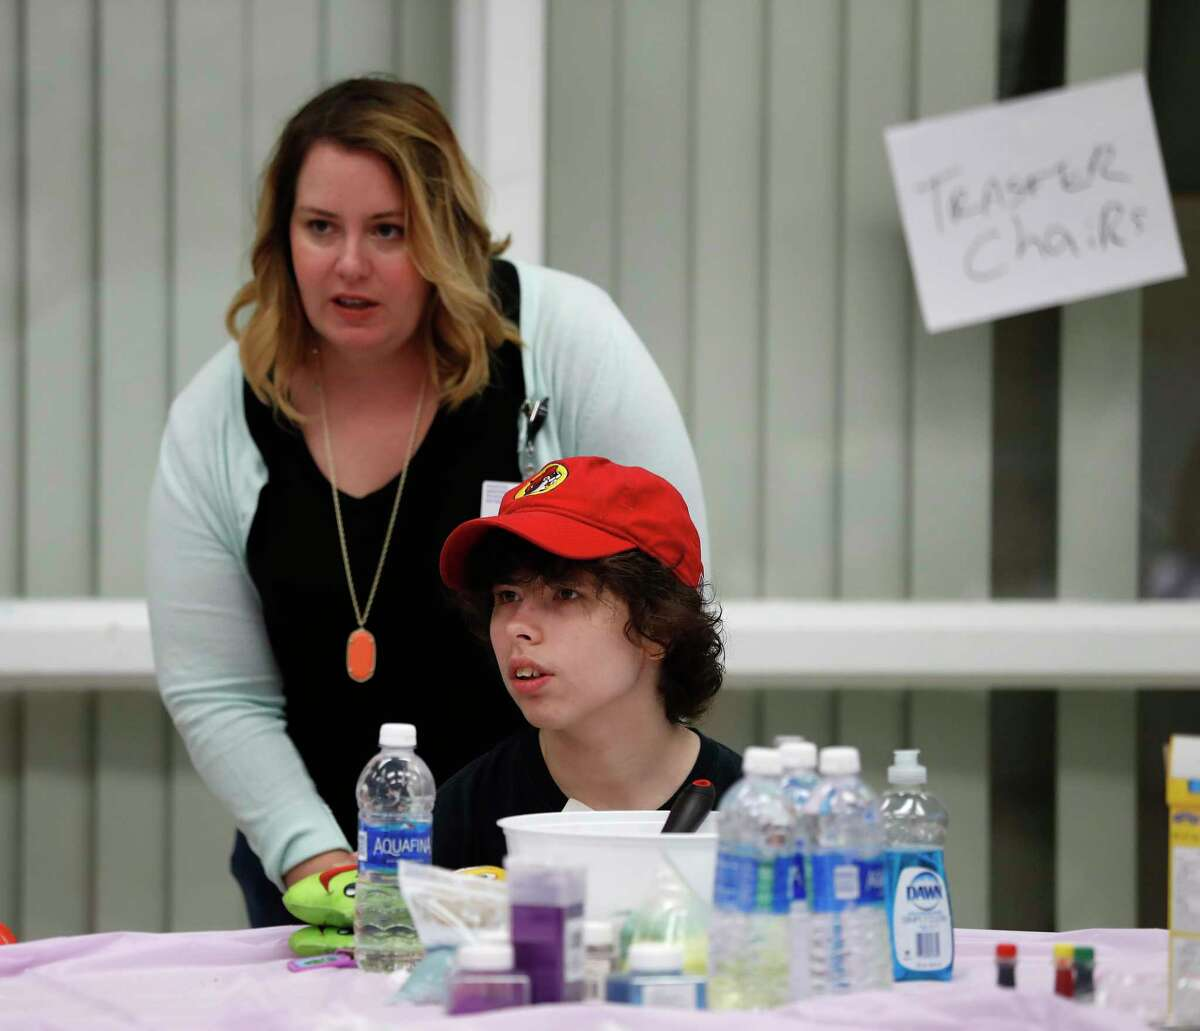 Kristen McClintock, of Westside High School, works with her student Emily Foust, 21 at a makeshift day school at the West Gray Multiservice Center, Wednesday, Sept. 6, 2017, in Houston. As schools remain closed for a second straight week in most Houston-area districts, a group of Houston ISD teachers have created pop-up childcare centers and day camps across the city. About 1,600 certified teachers have signed up to help hundreds of local students in local shelters, in churches and in any space they can find. They said they worried about parents being over-loaded dealing with flooded homes on top of trying to find someone to care for their children.